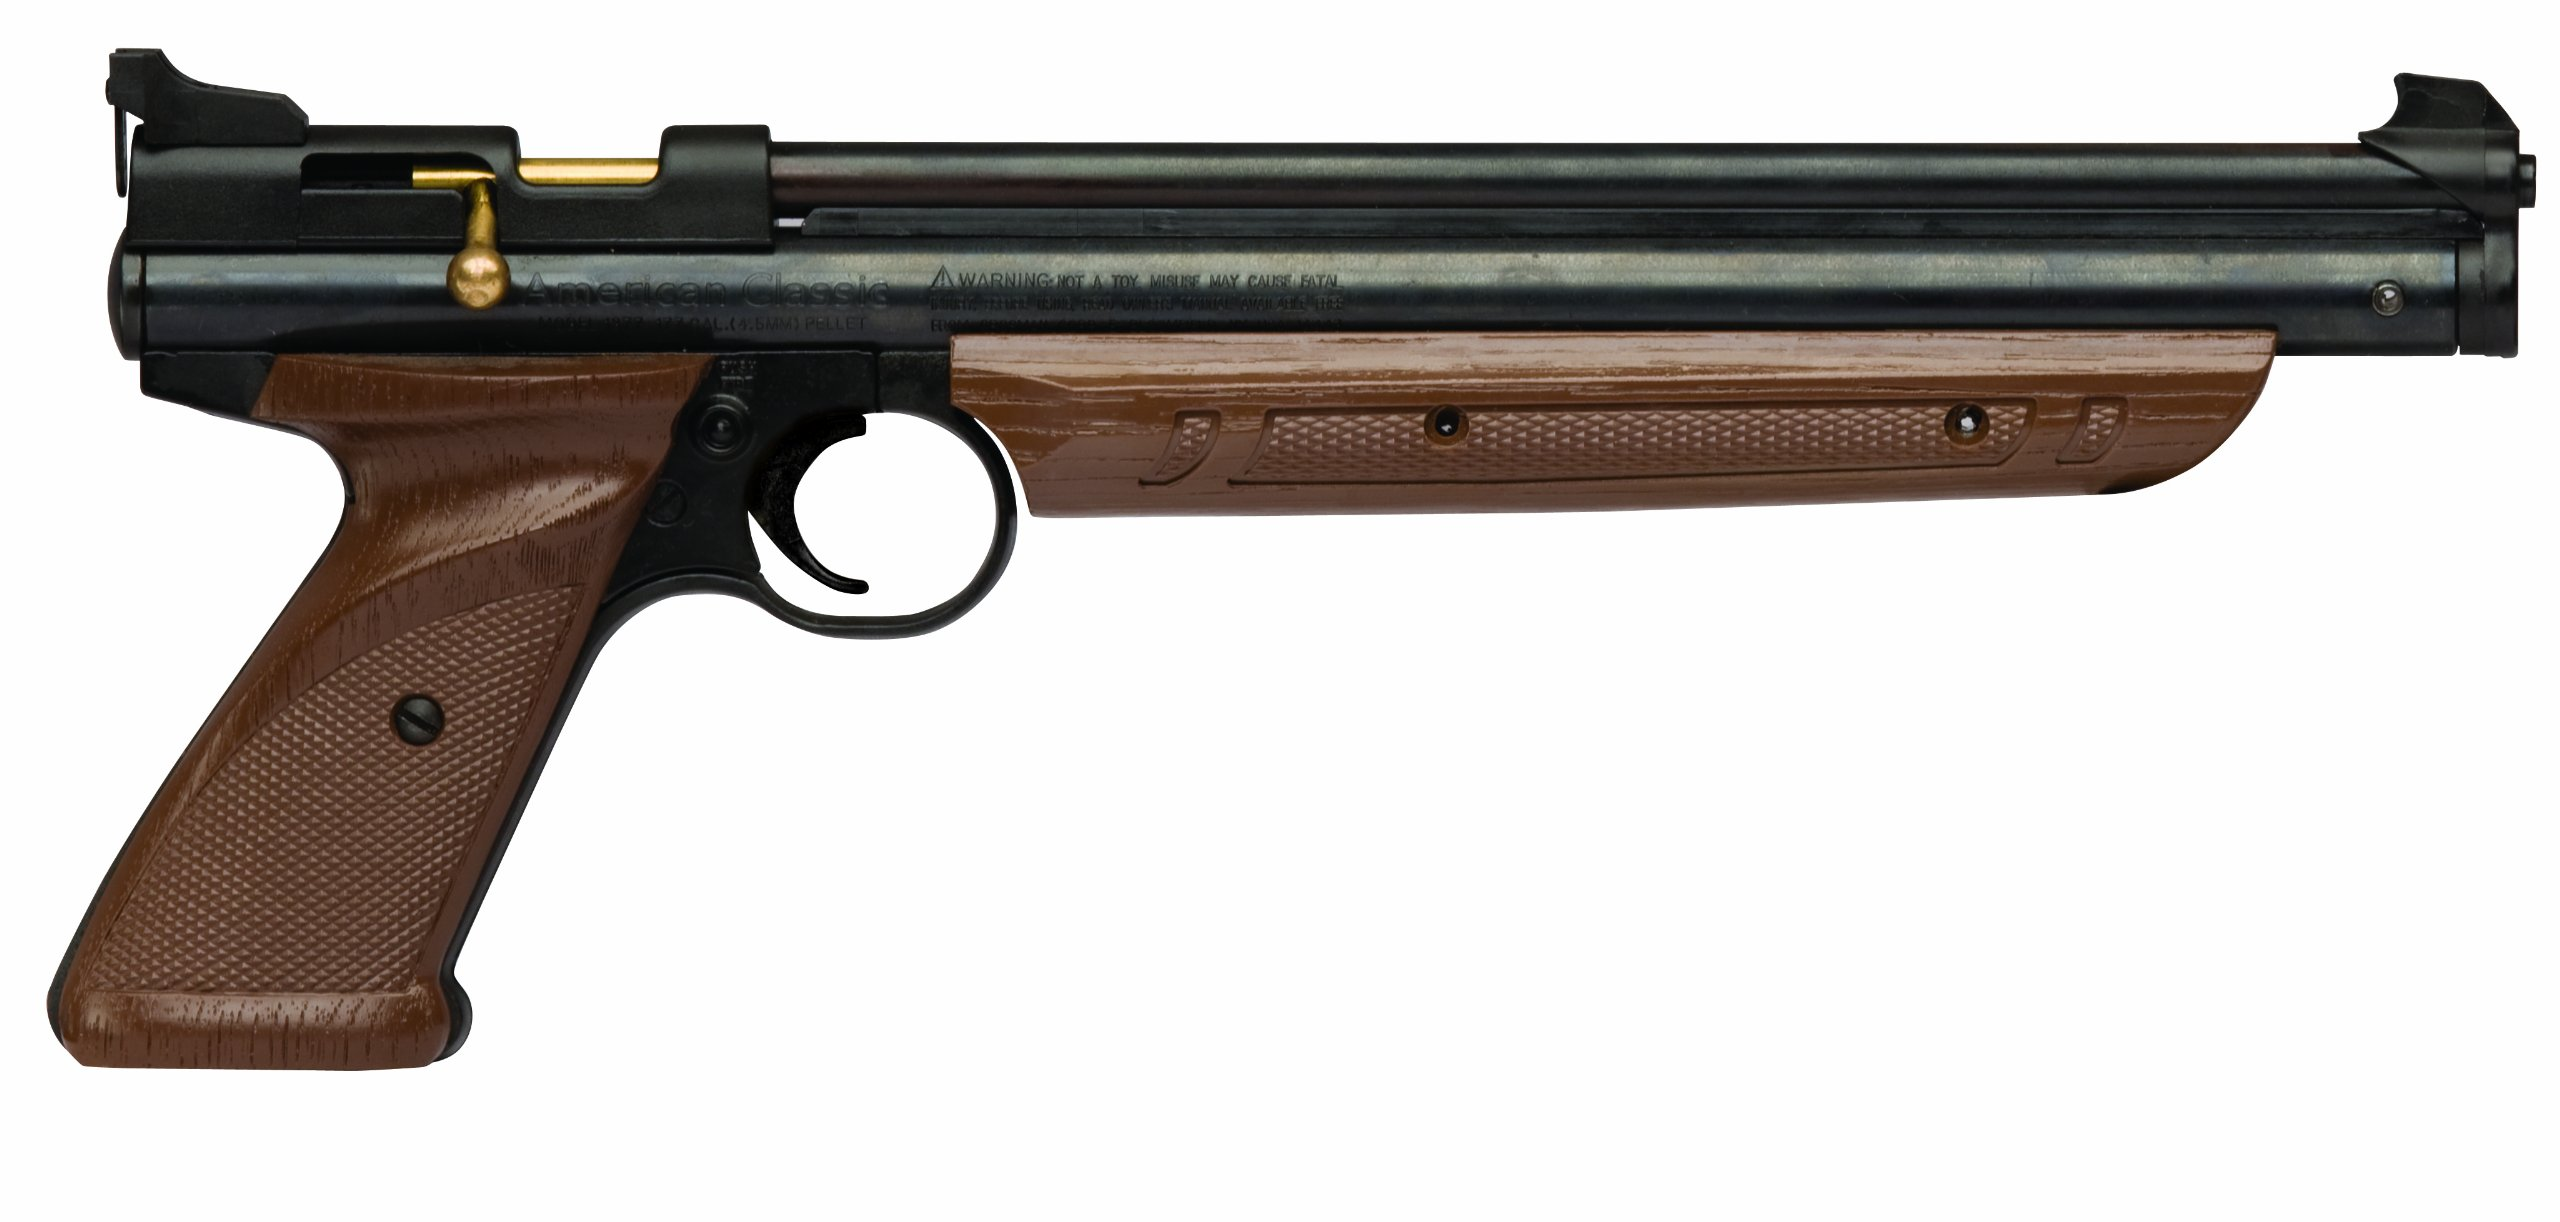 Ultimate Guides To Choose The Best Air Pistol 2016